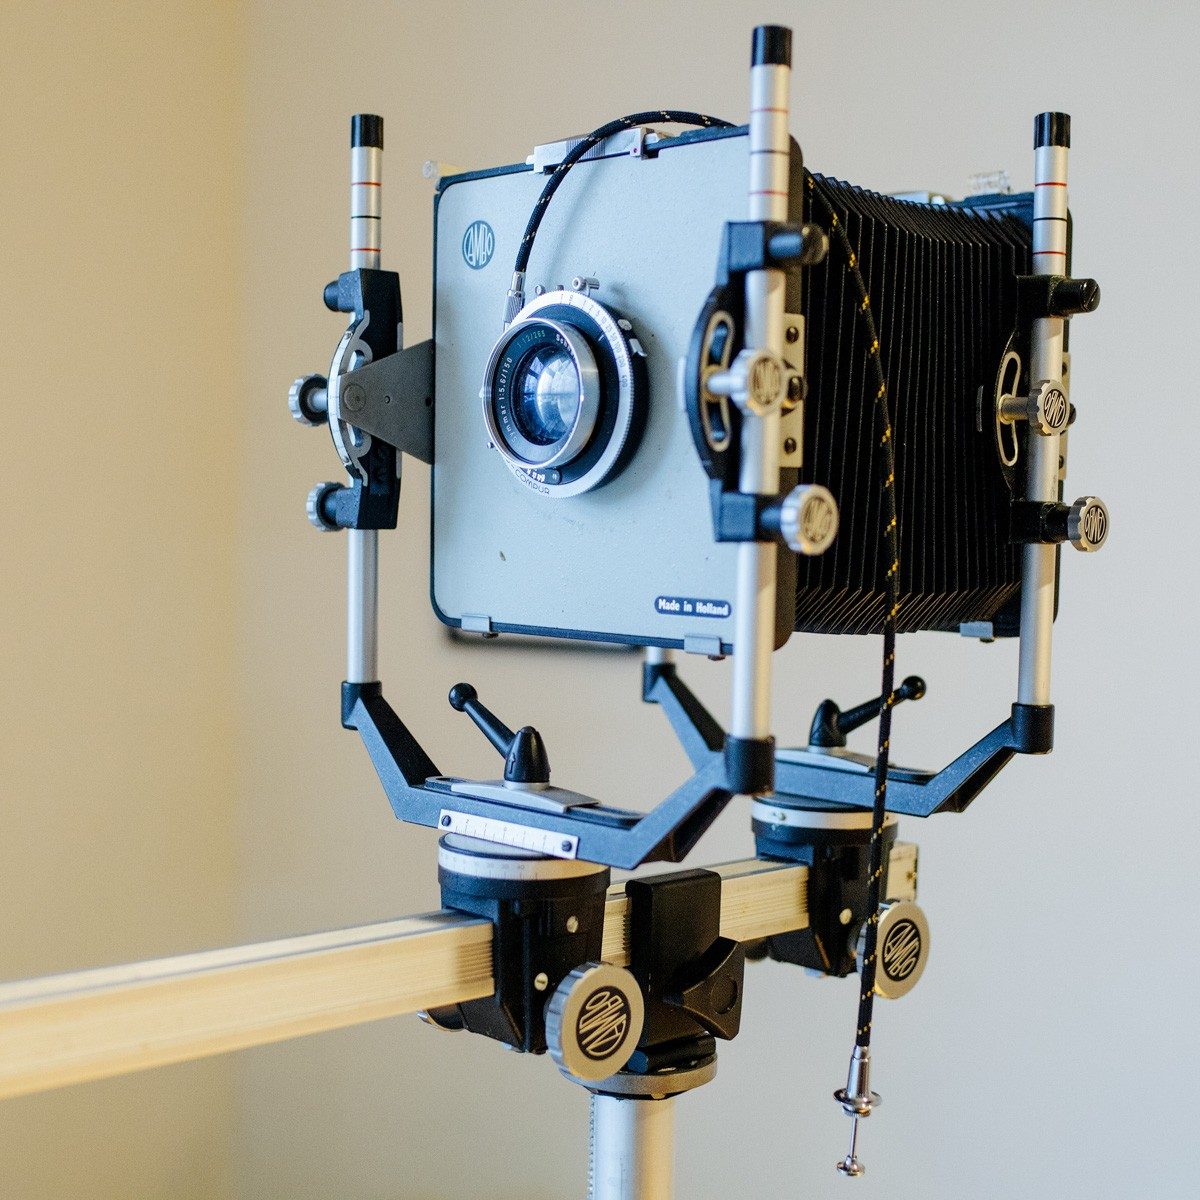 Cambo 4x5 monorail camera with 150mm f/5.6 Schneider-Kreuznach lens and Fidelity film holders